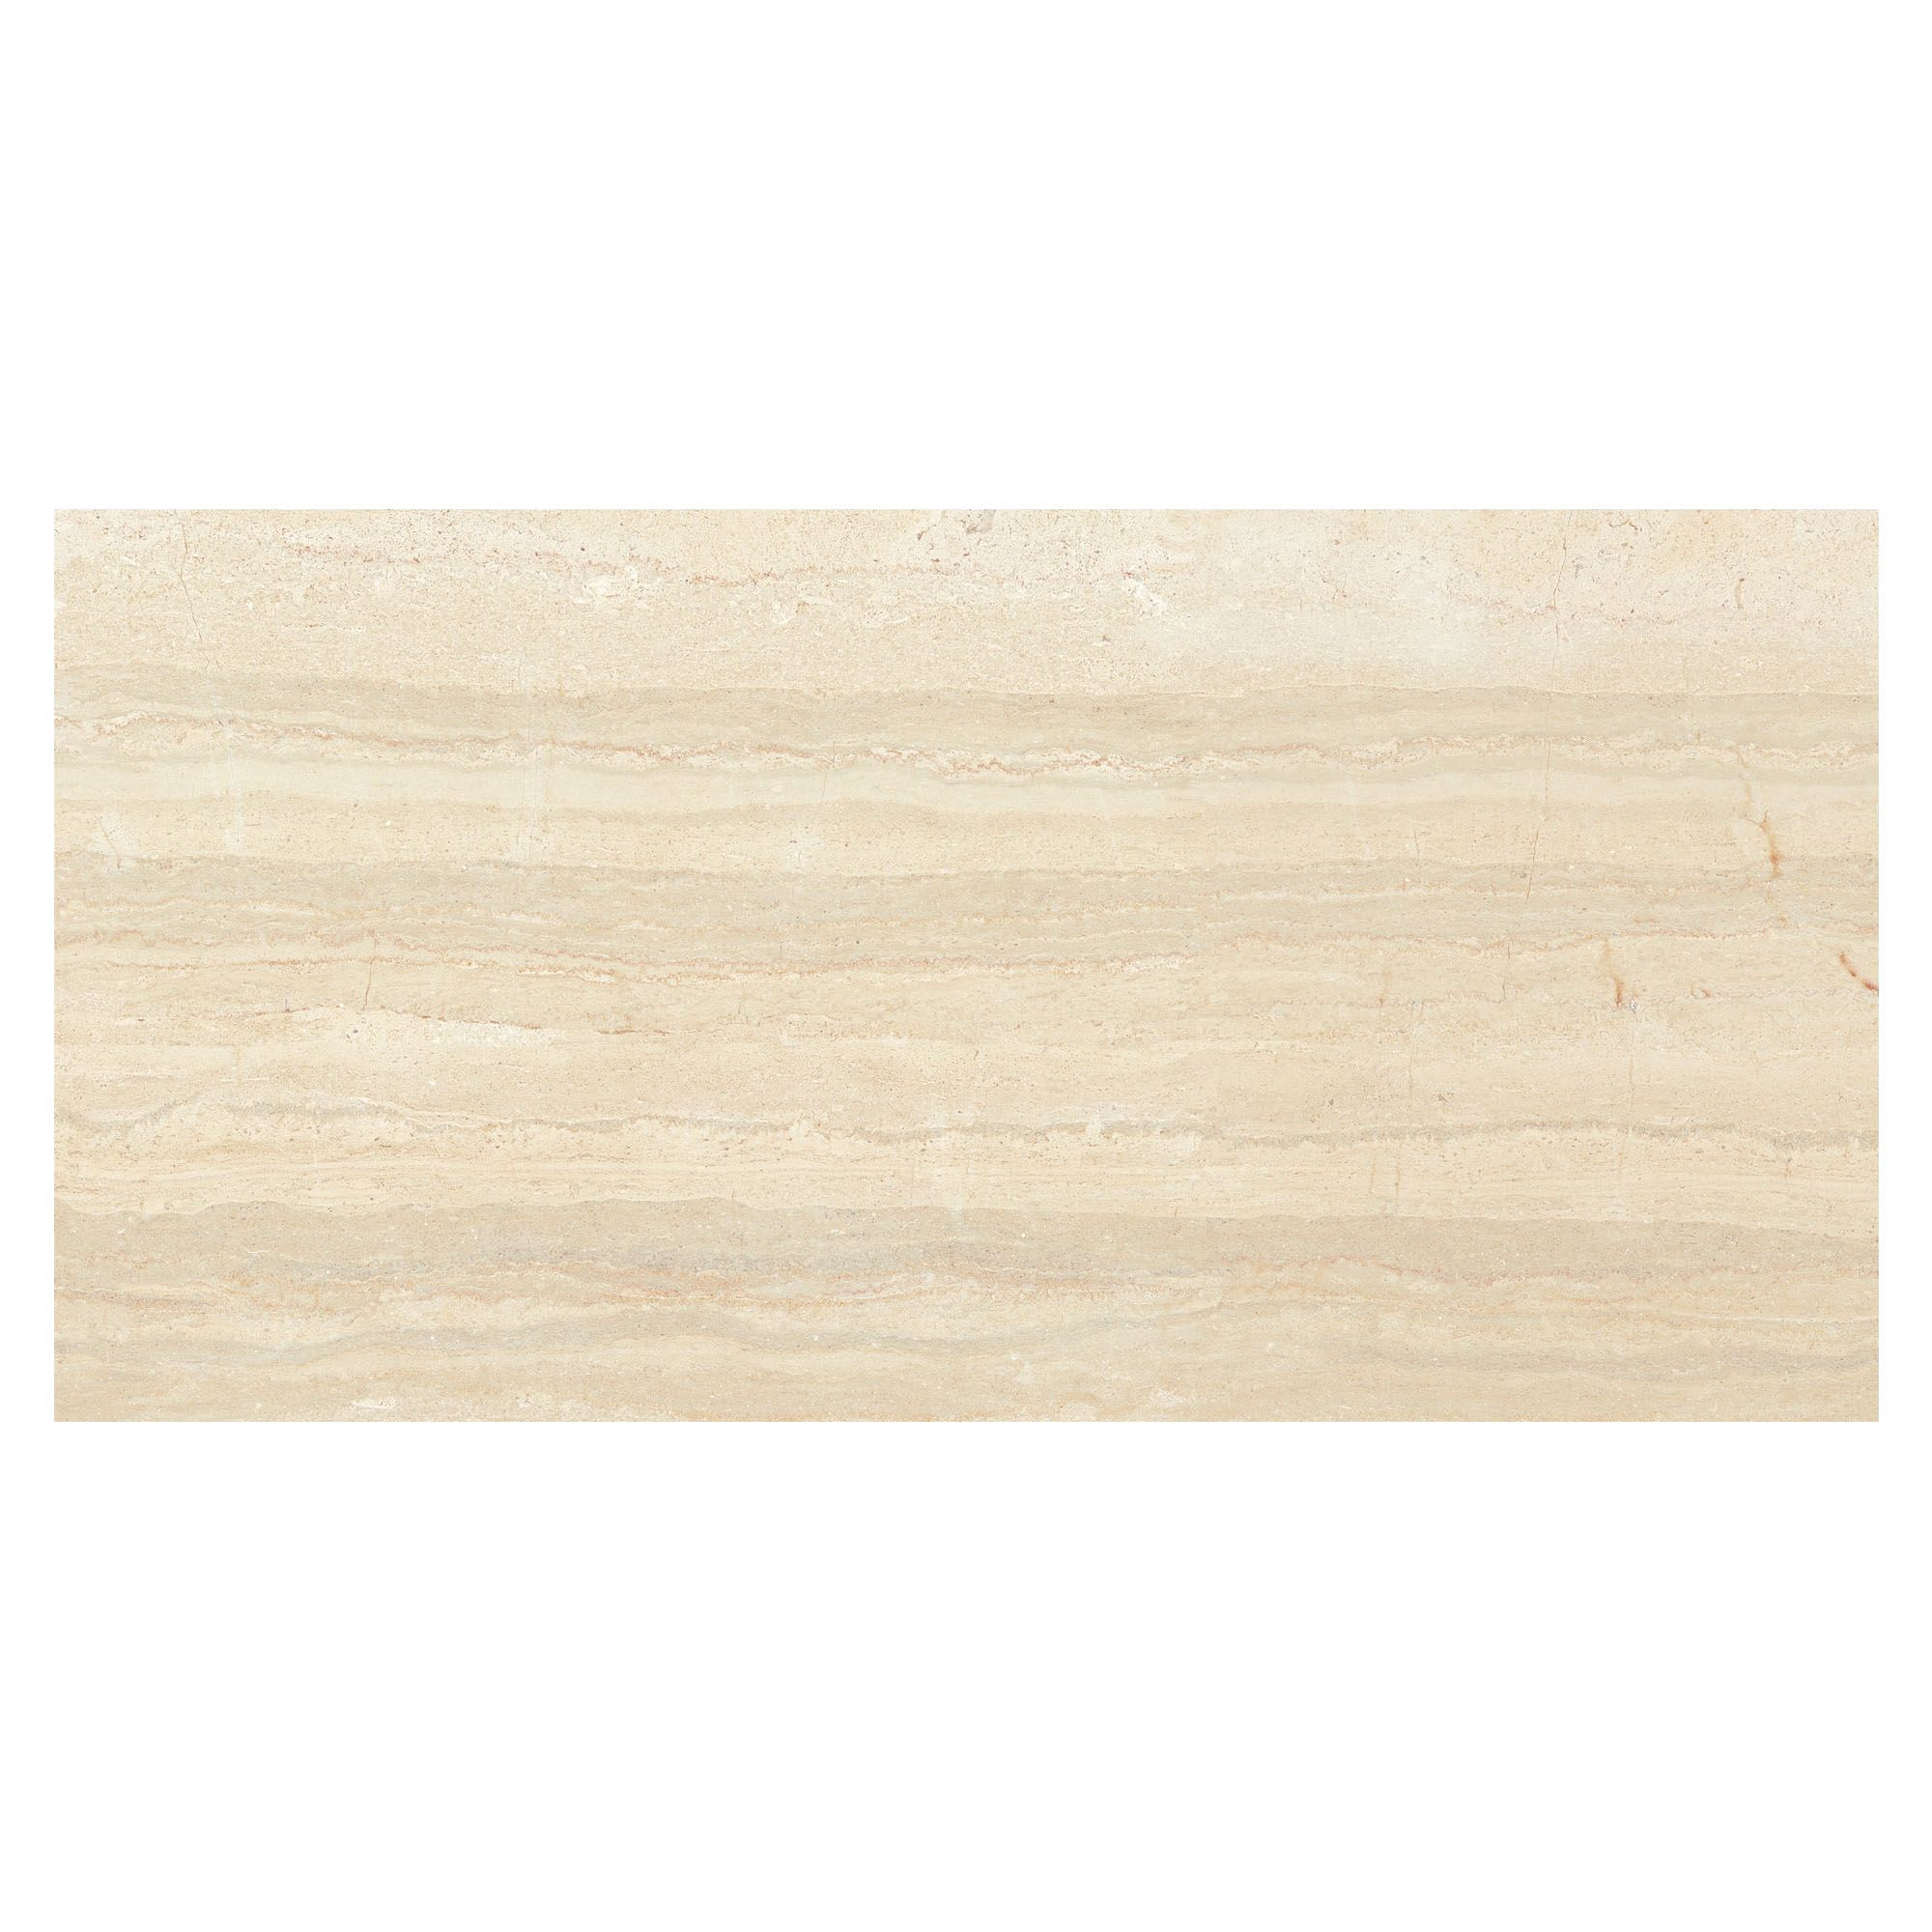 Neos Light Beige Wood Effect Ceramic Wall Tile, Pack Of 8, (l)500mm (w)250mm